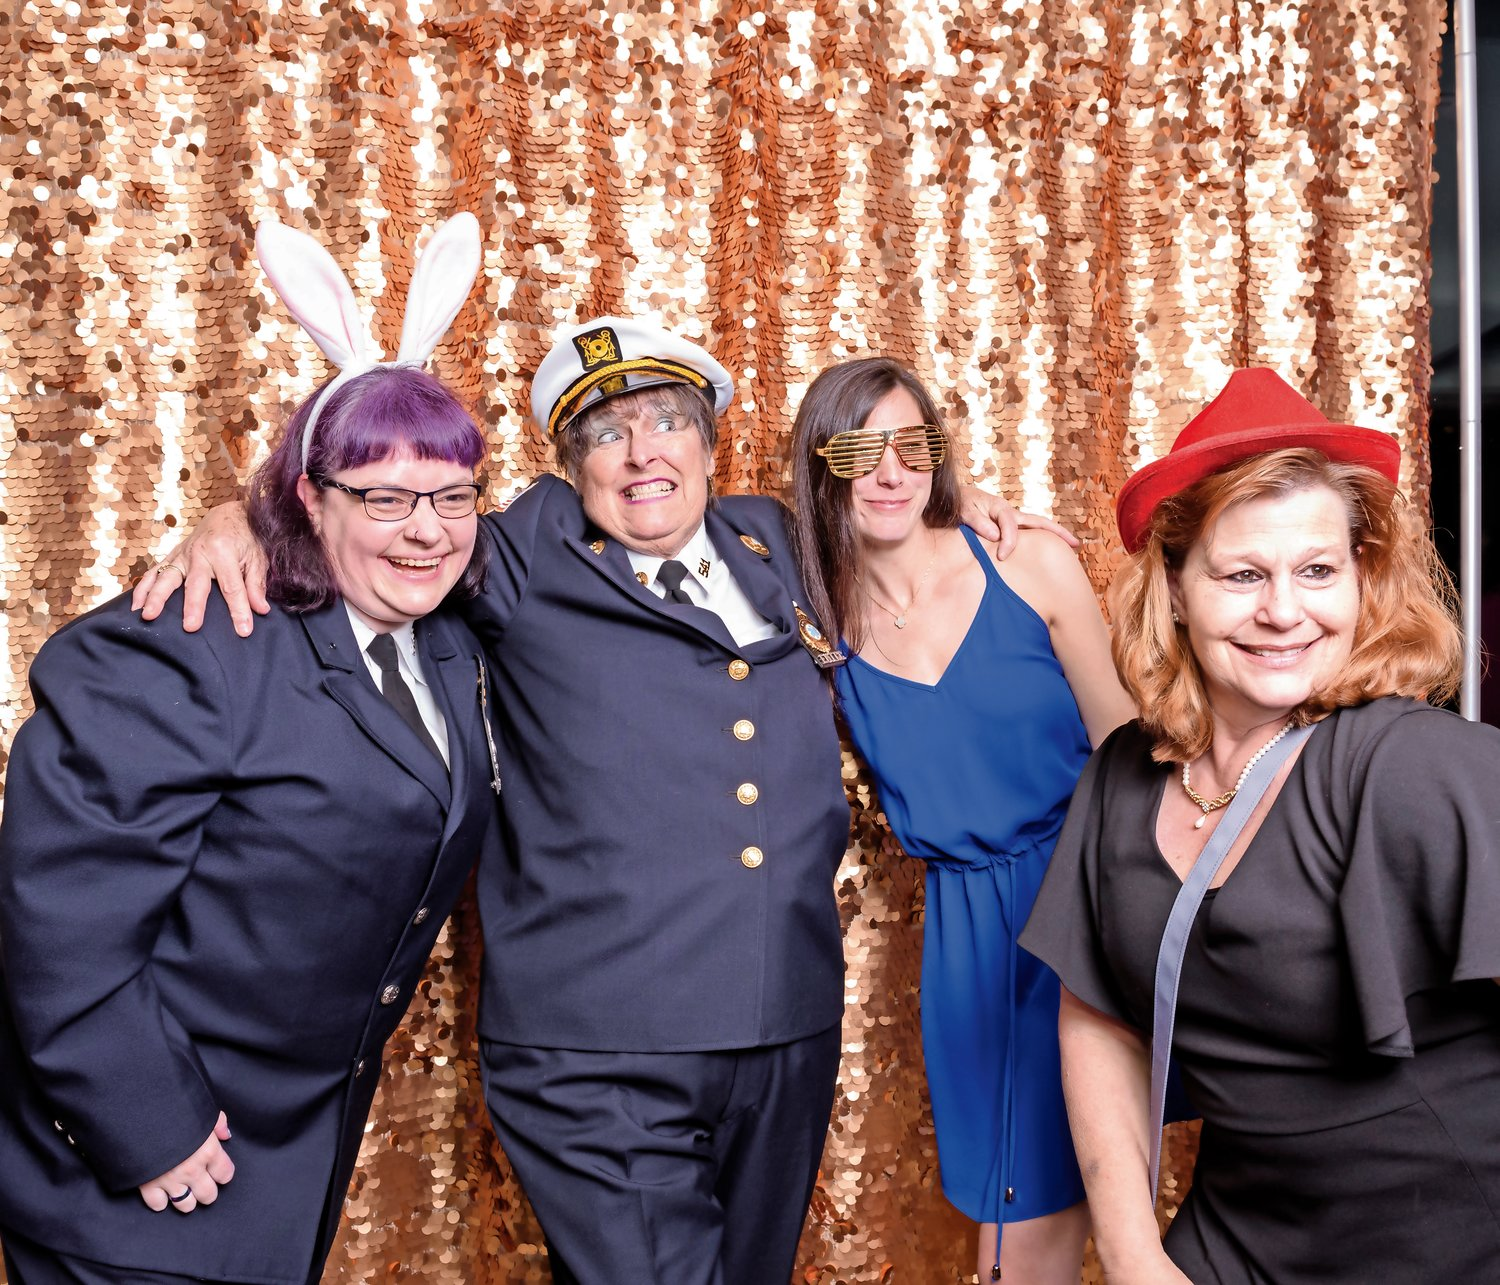 Meri Kassner, left, Lynn Ramskill, Sara Berke and Tori Savinetti accessorized to the nines before entering the photo booth at the Locust Valley Fire Department installation dinner on May 11.